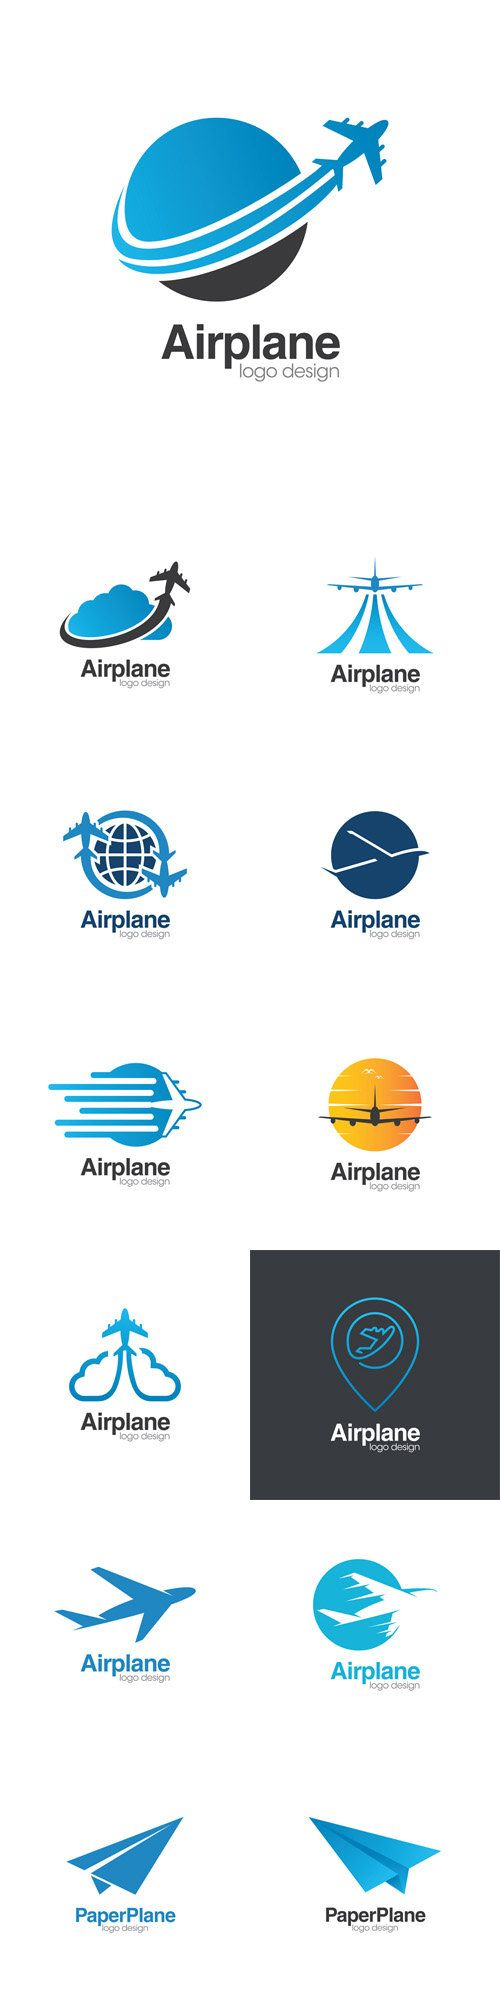 vectors airplane creative concept logo design tempate denver